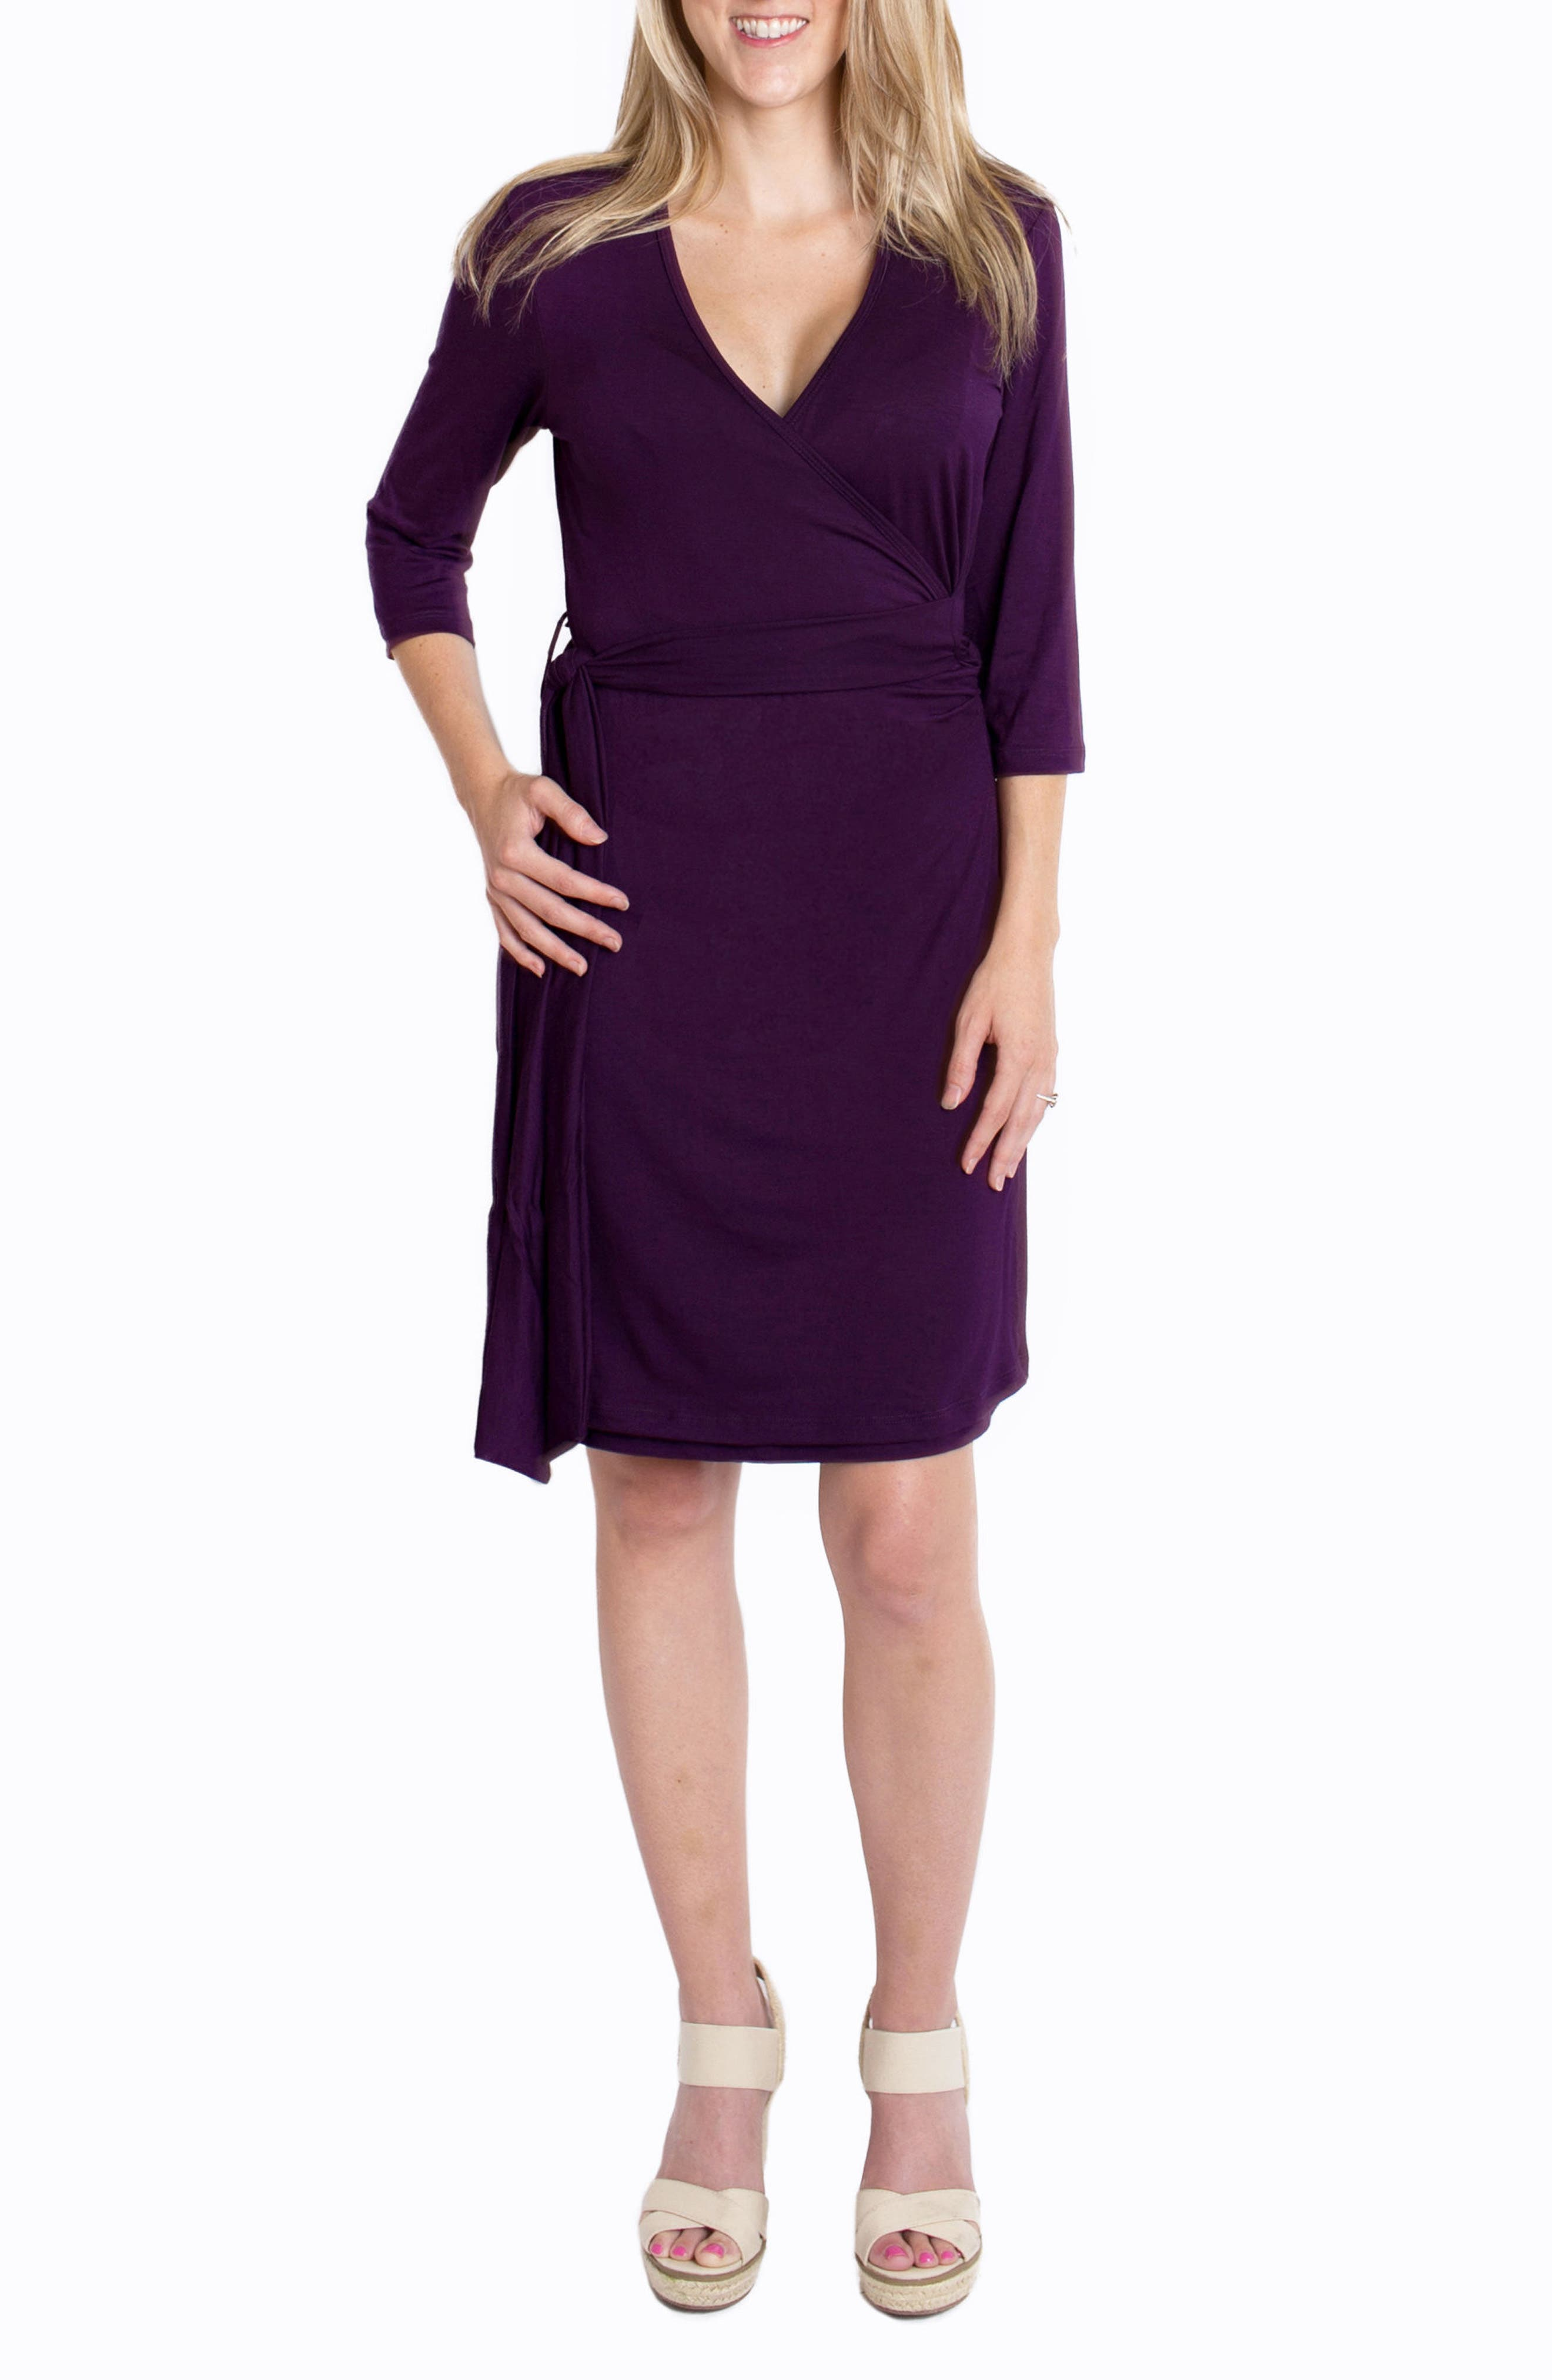 'Whimsical' Nursing Wrap Dress,                         Main,                         color, Plum